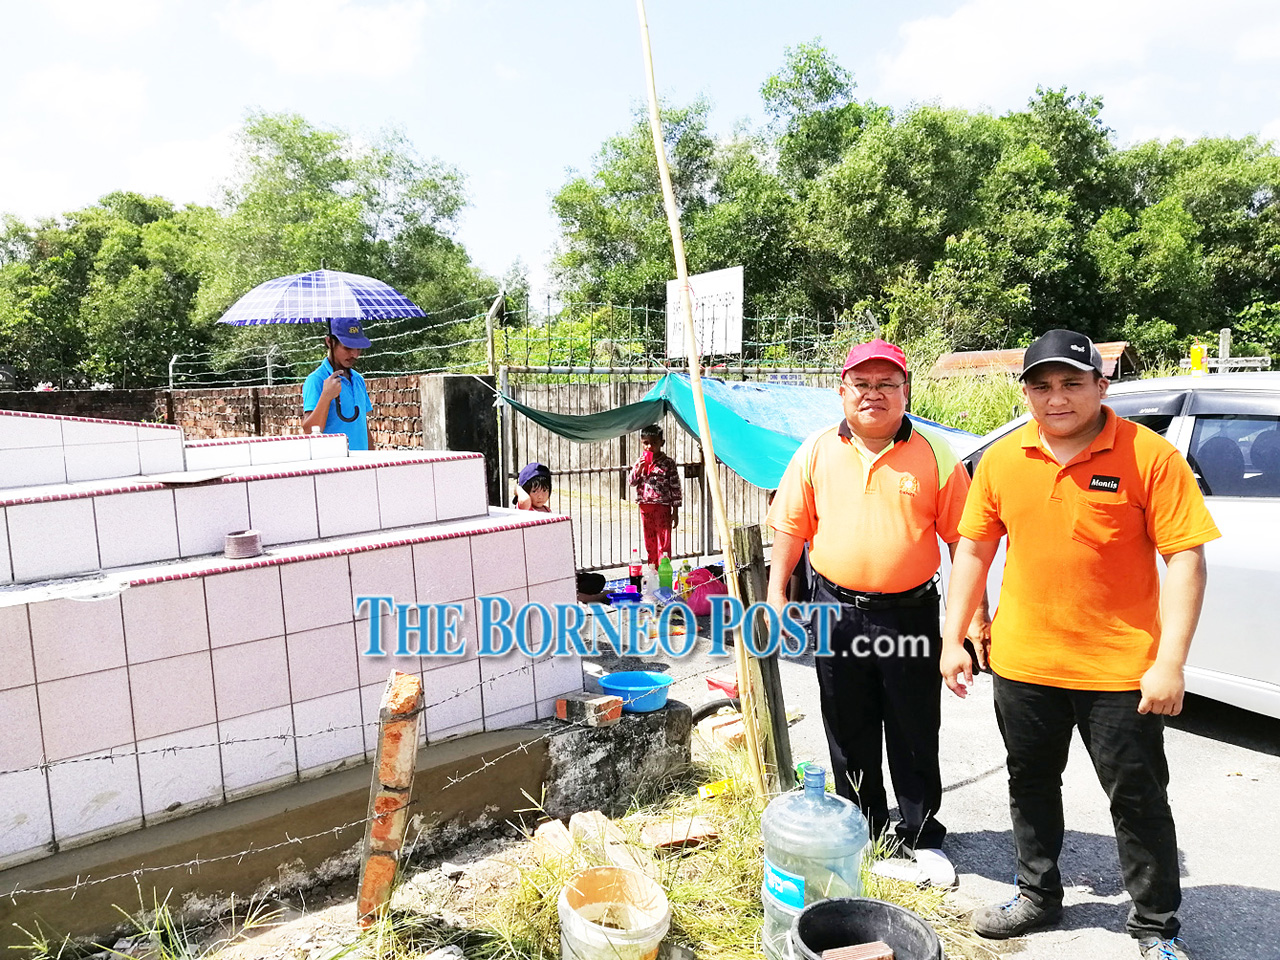 Desecrated tombs uncovers suspected illegal burials